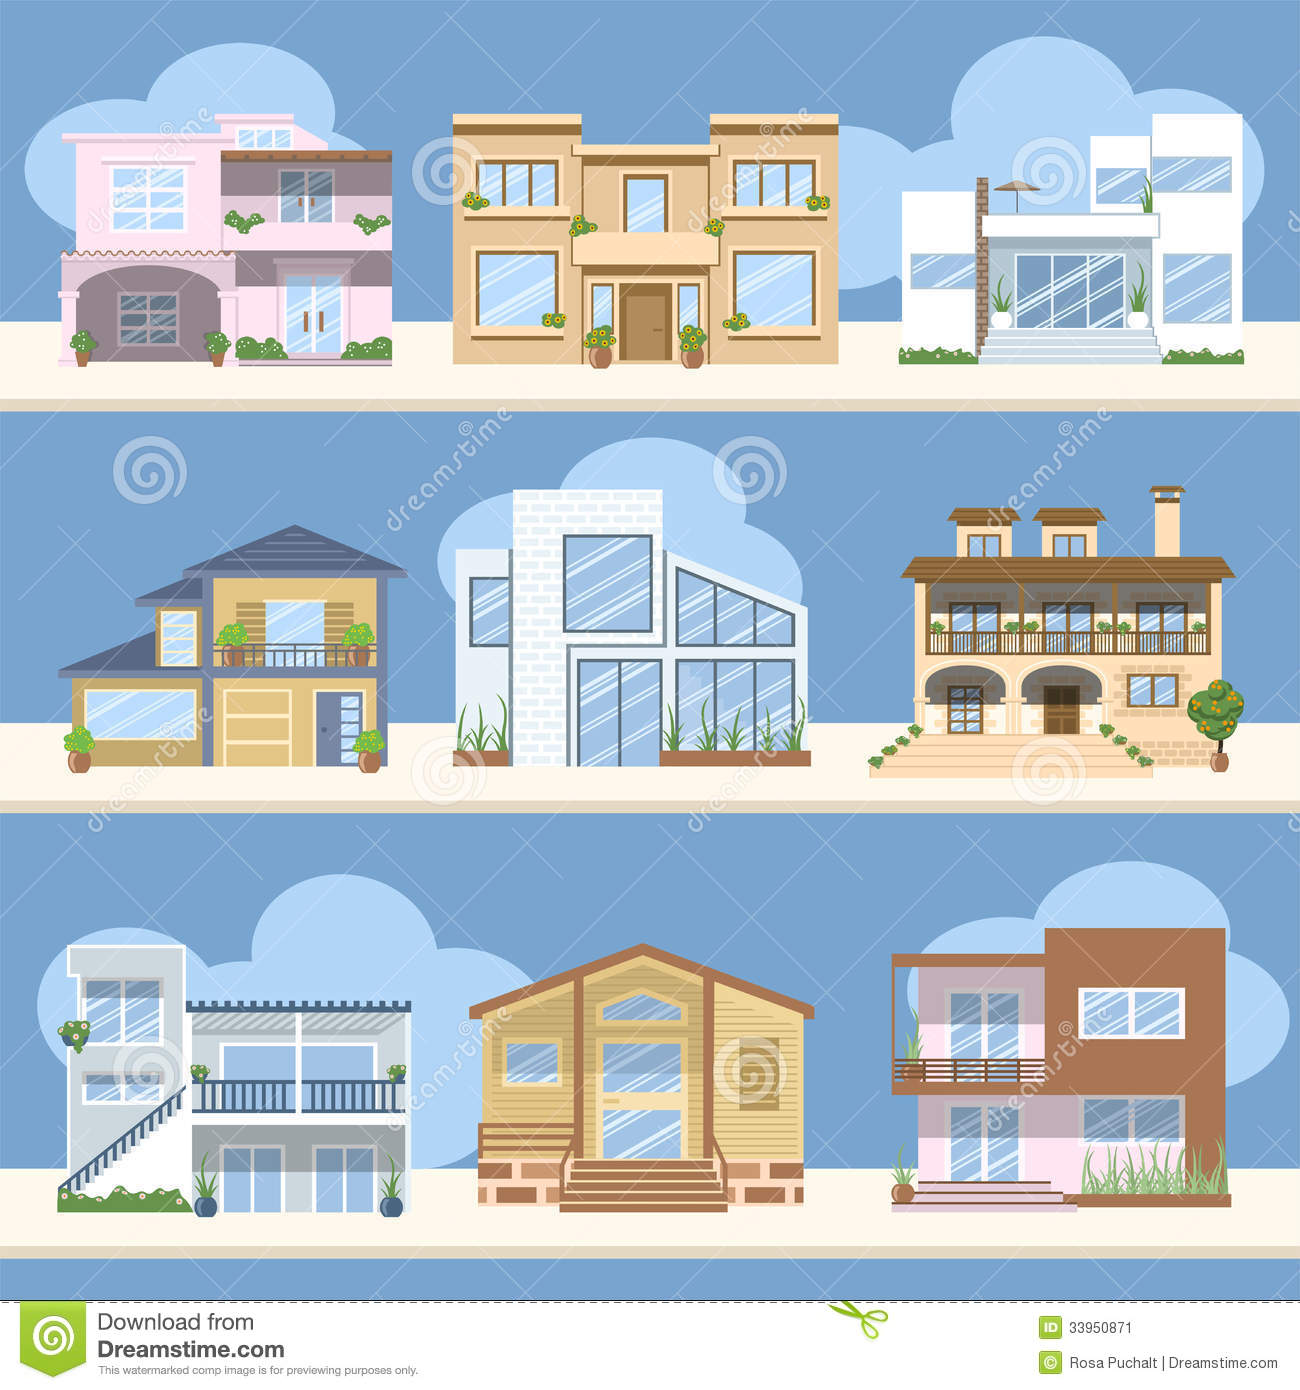 Houses with beautiful colors and designs stock image for Different models of houses